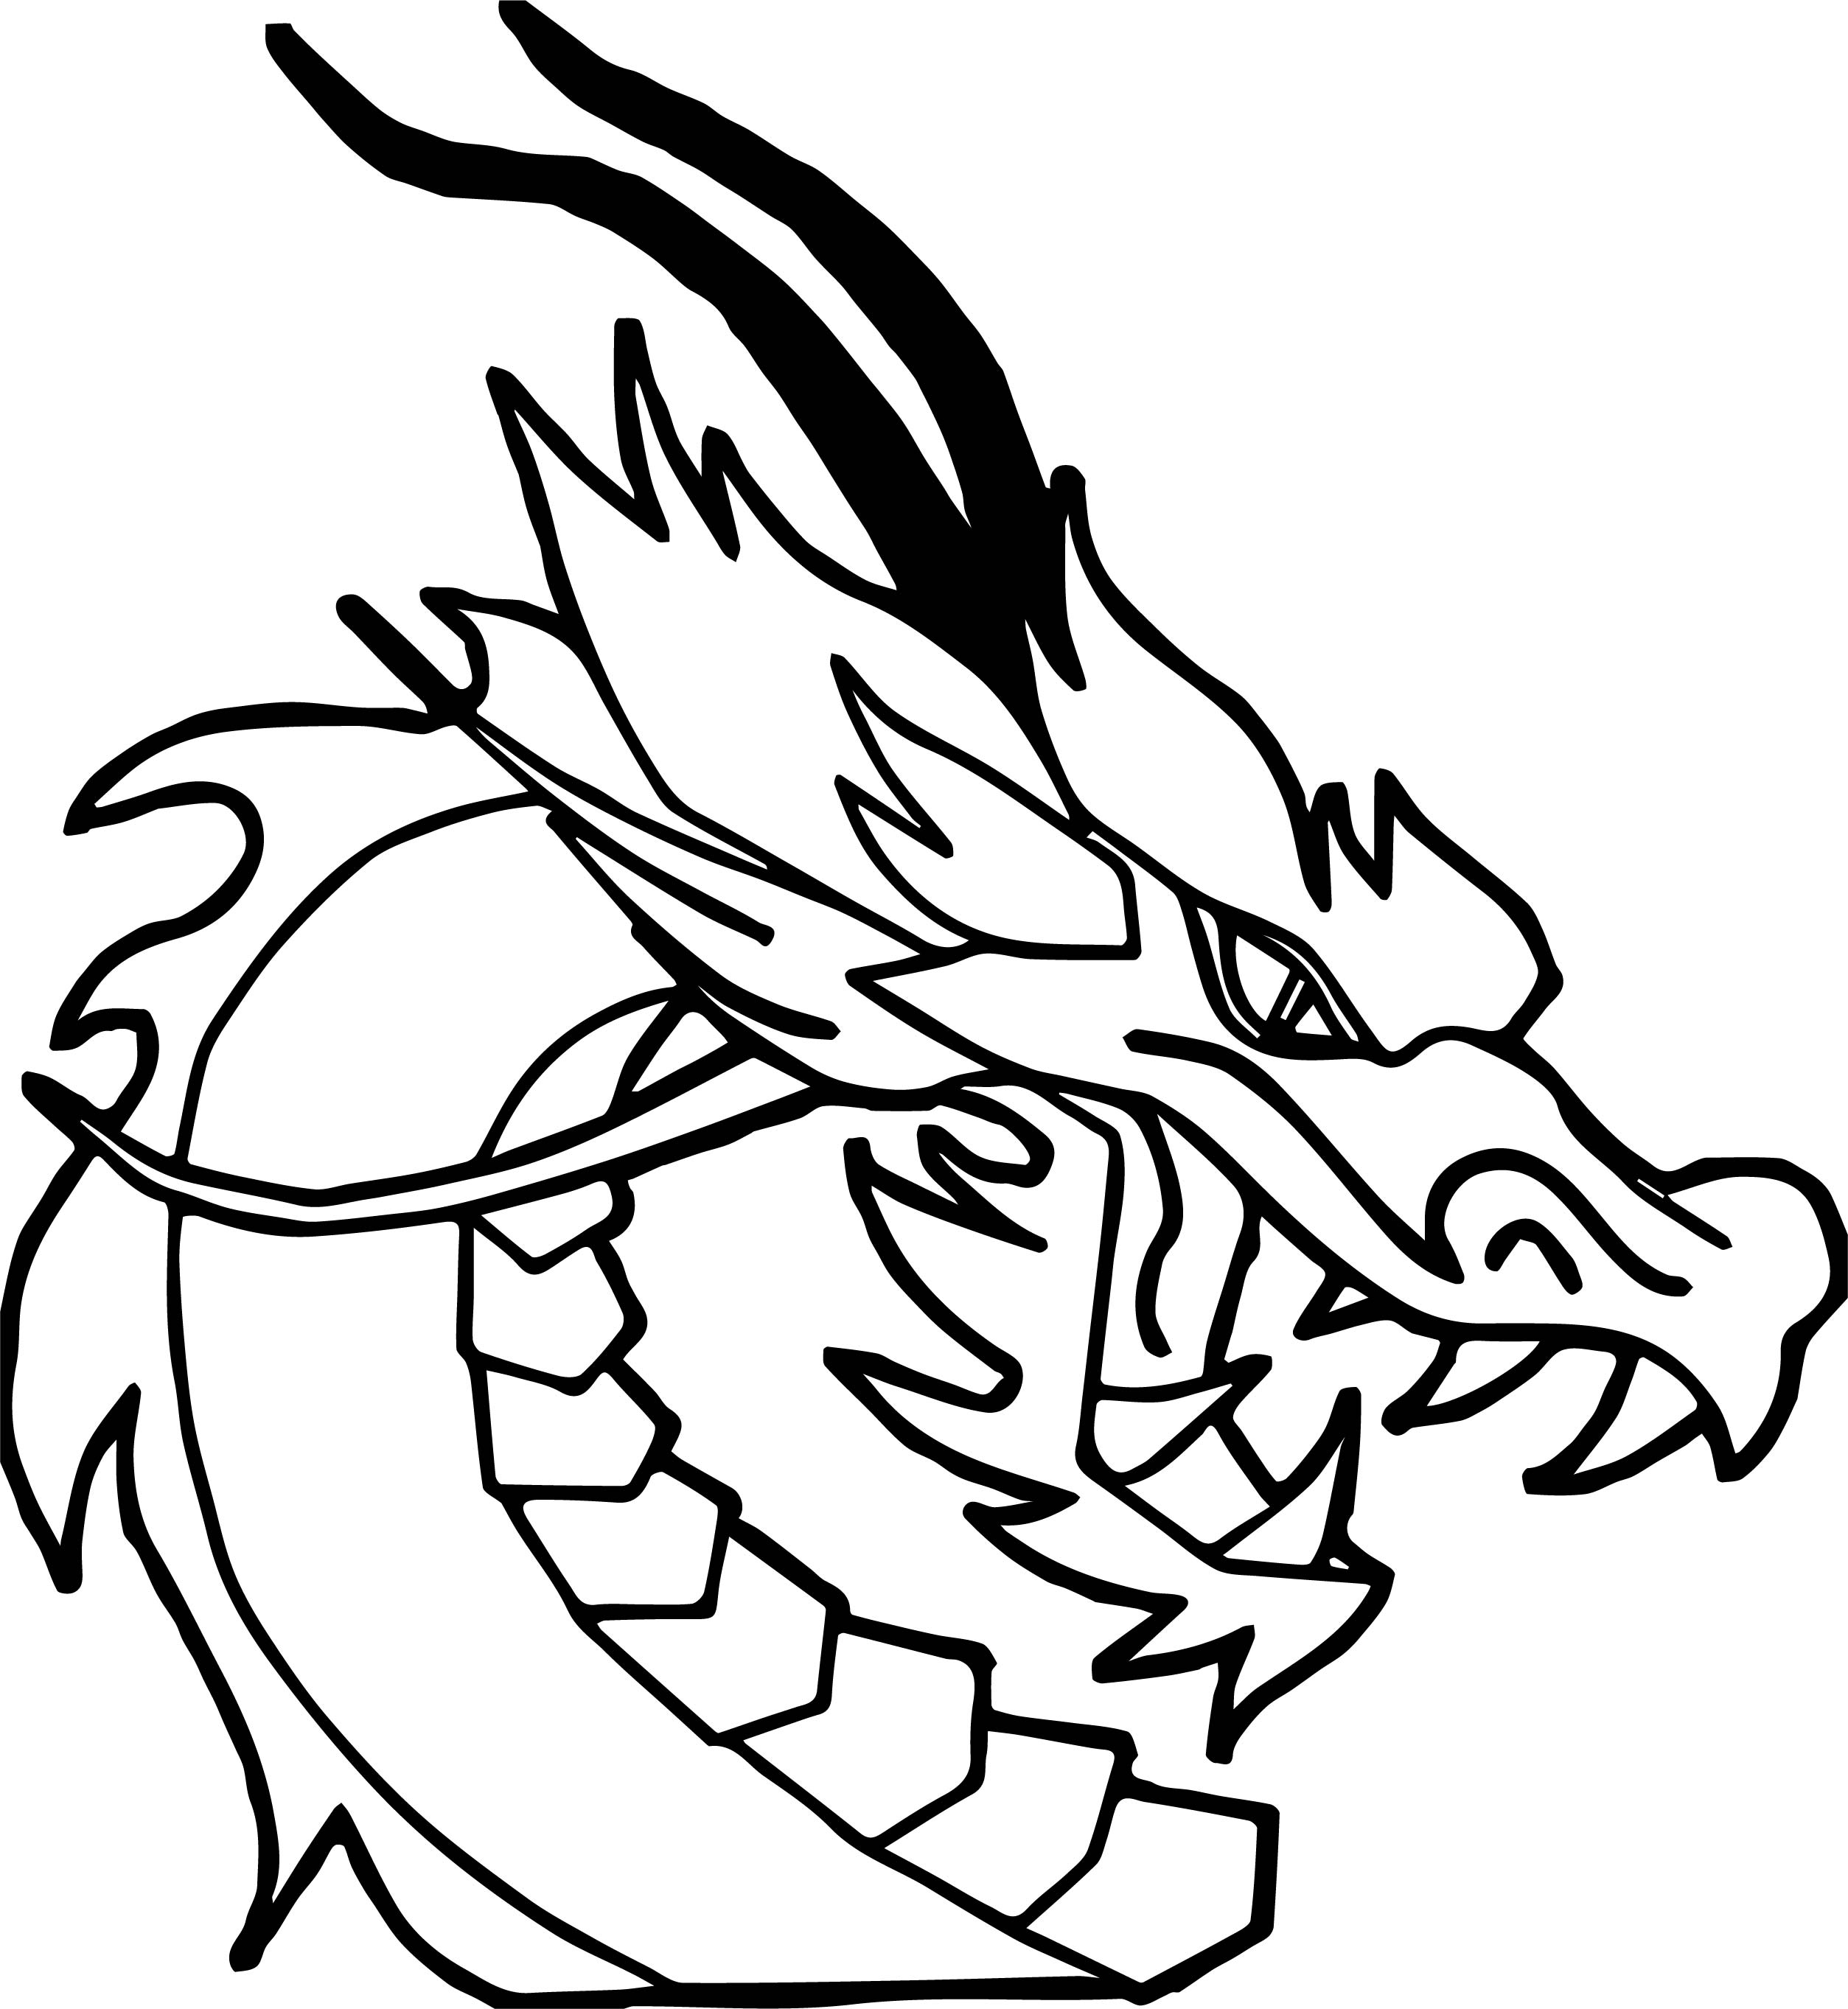 Dragon Face Side View Coloring Page | Wecoloringpage.com